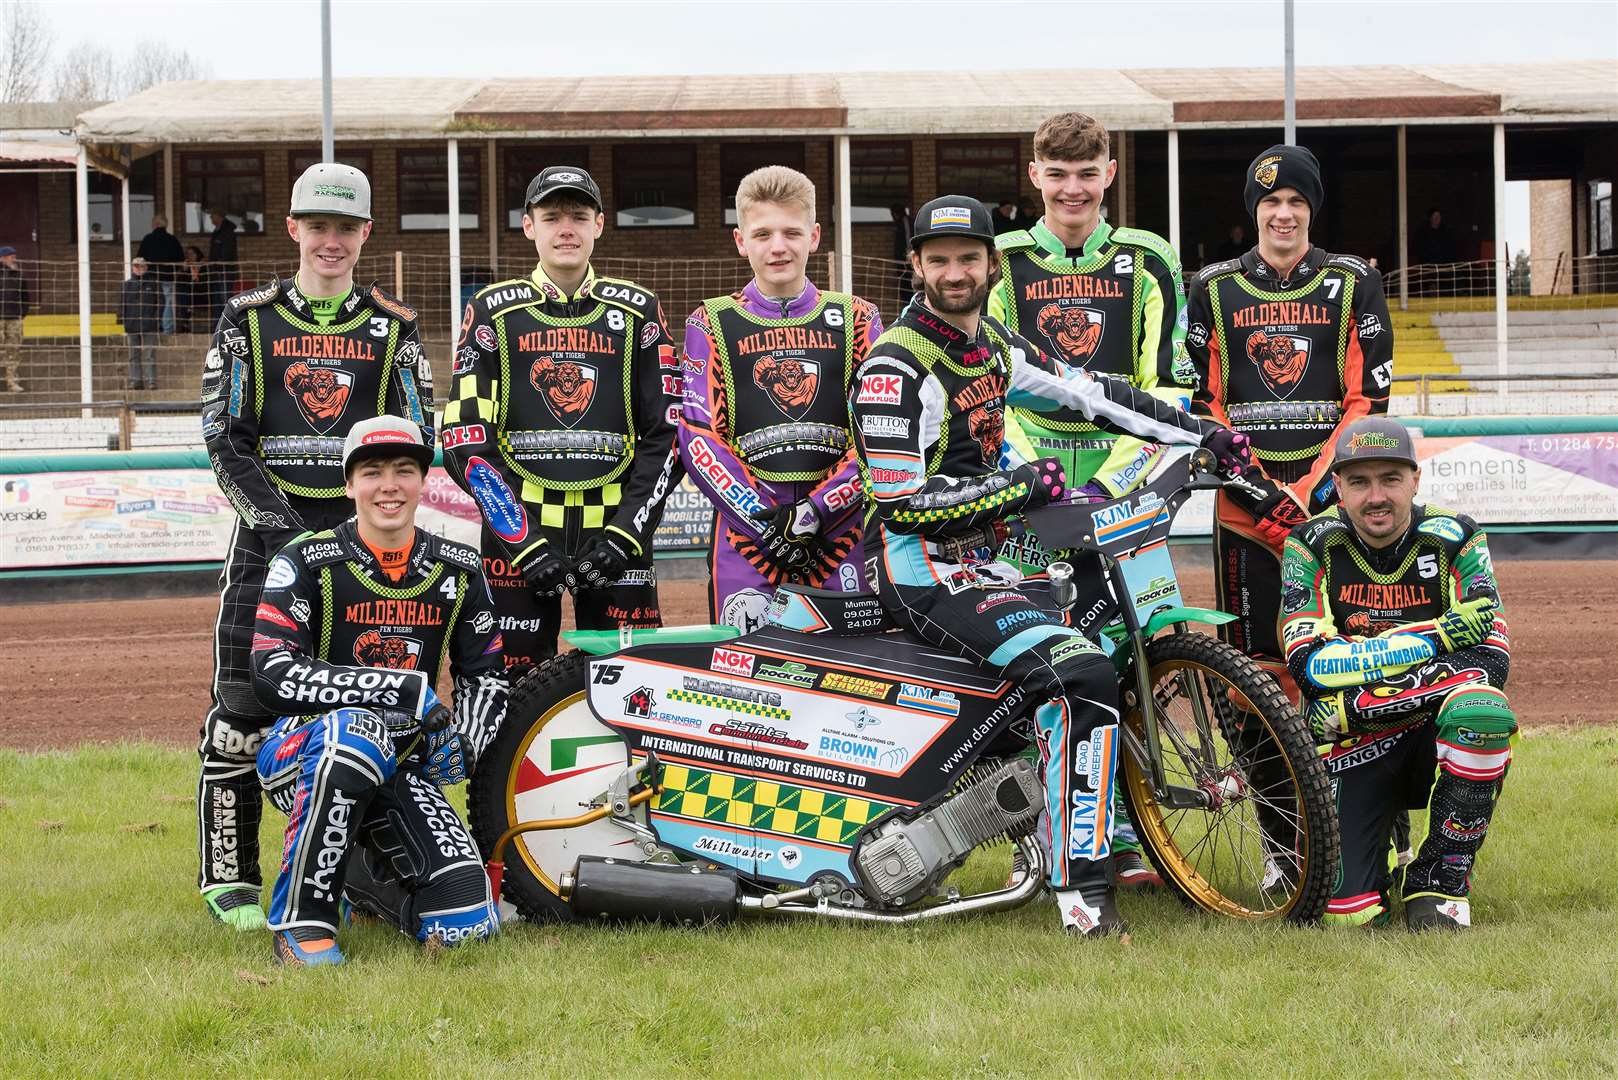 Mildenhall Fen Tigers Press and Practice DayFen Tigers team 2019 Danny Ayres, Sam Bebee, Charlie Brooks, Jason Edwards, Dave Wallinger, Elliot Kelly, Macauley Leek and Sam Norris Picture by Mark Westley. (14242400)